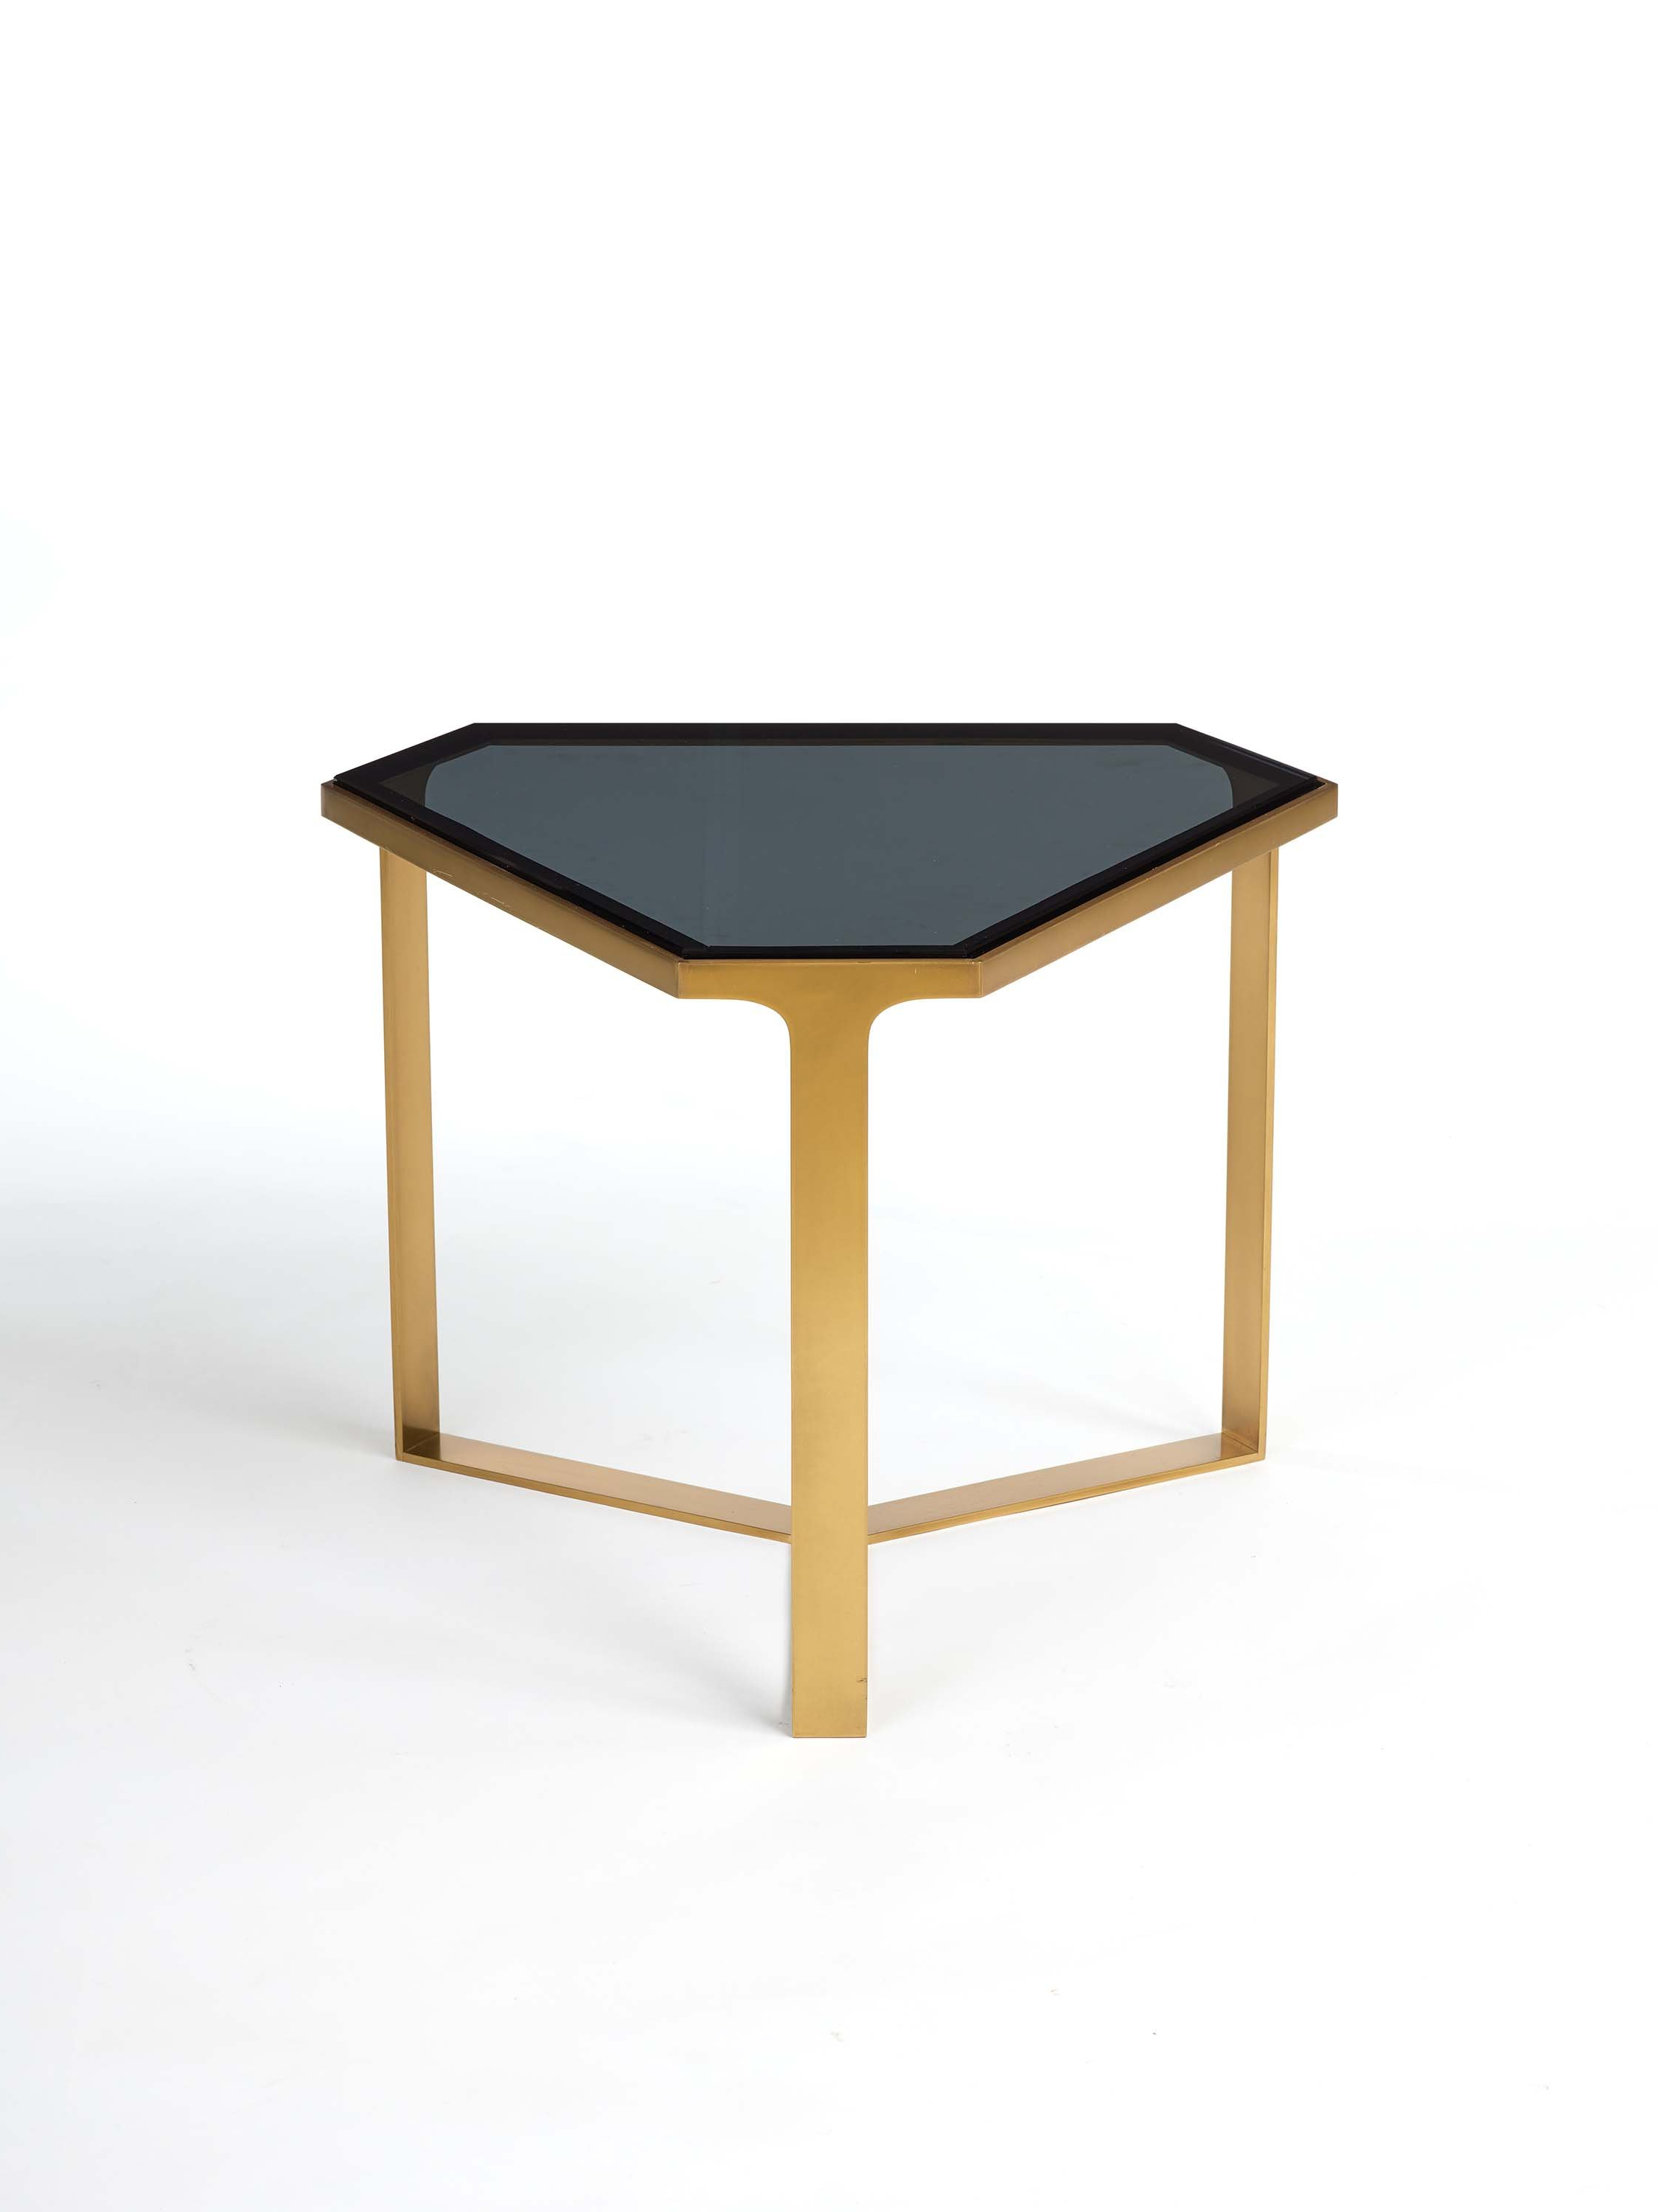 Popular Donghia Forma Table With Satin Brass Base And Gray Glass Top For Throughout Forma Cocktail Tables (View 11 of 20)